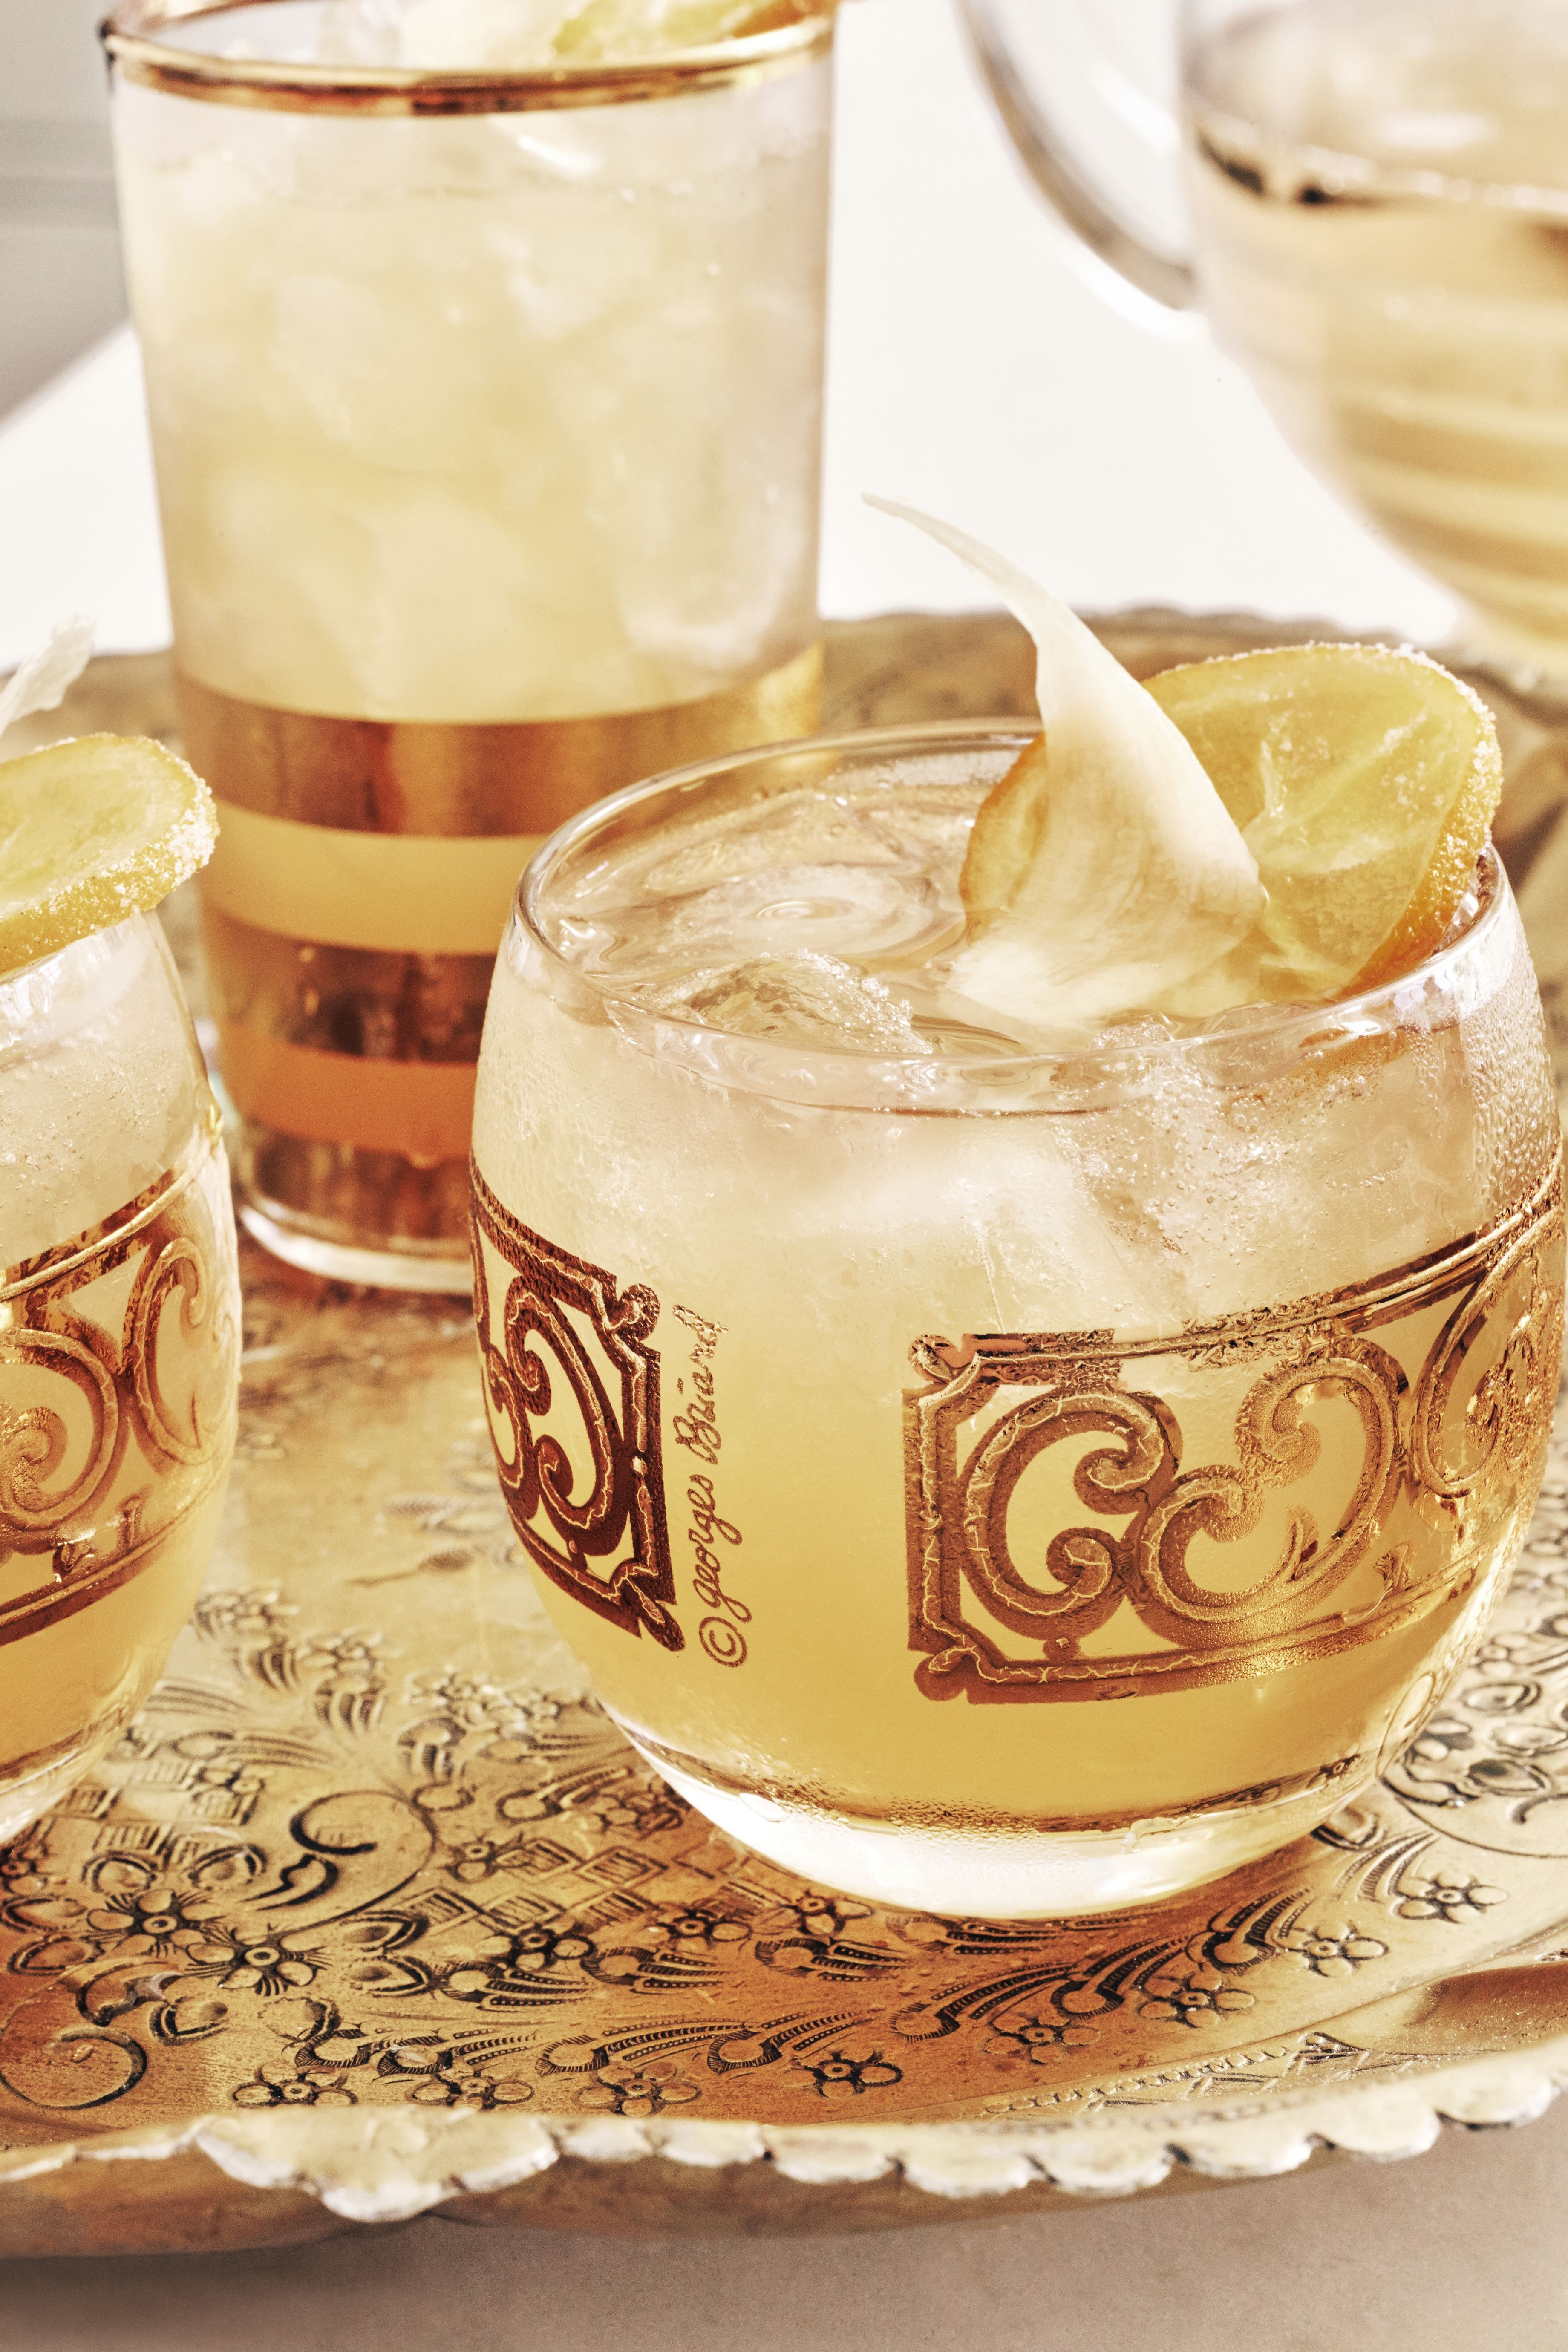 """<p>Toast the holidays with your&nbsp&#x3B;favorite punch or cocktail served&nbsp&#x3B;in pretty vintage glassware.</p><p><a href=""""http://www.goodhousekeeping.com/best-ginger-bee-sting-recipe"""" target=""""_blank"""" data-tracking-id=""""recirc-text-link""""><em data-redactor-tag=""""em"""" data-verified=""""redactor"""" data-tracking-id=""""recirc-text-link"""">Get the recipe here&nbsp&#x3B;»</em></a><span class=""""redactor-invisible-space""""><em data-redactor-tag=""""em"""" data-verified=""""redactor""""><a href=""""http://www.goodhousekeeping.com/""""></a></em></span><span class=""""redactor-invisible-space""""></span><br></p>"""